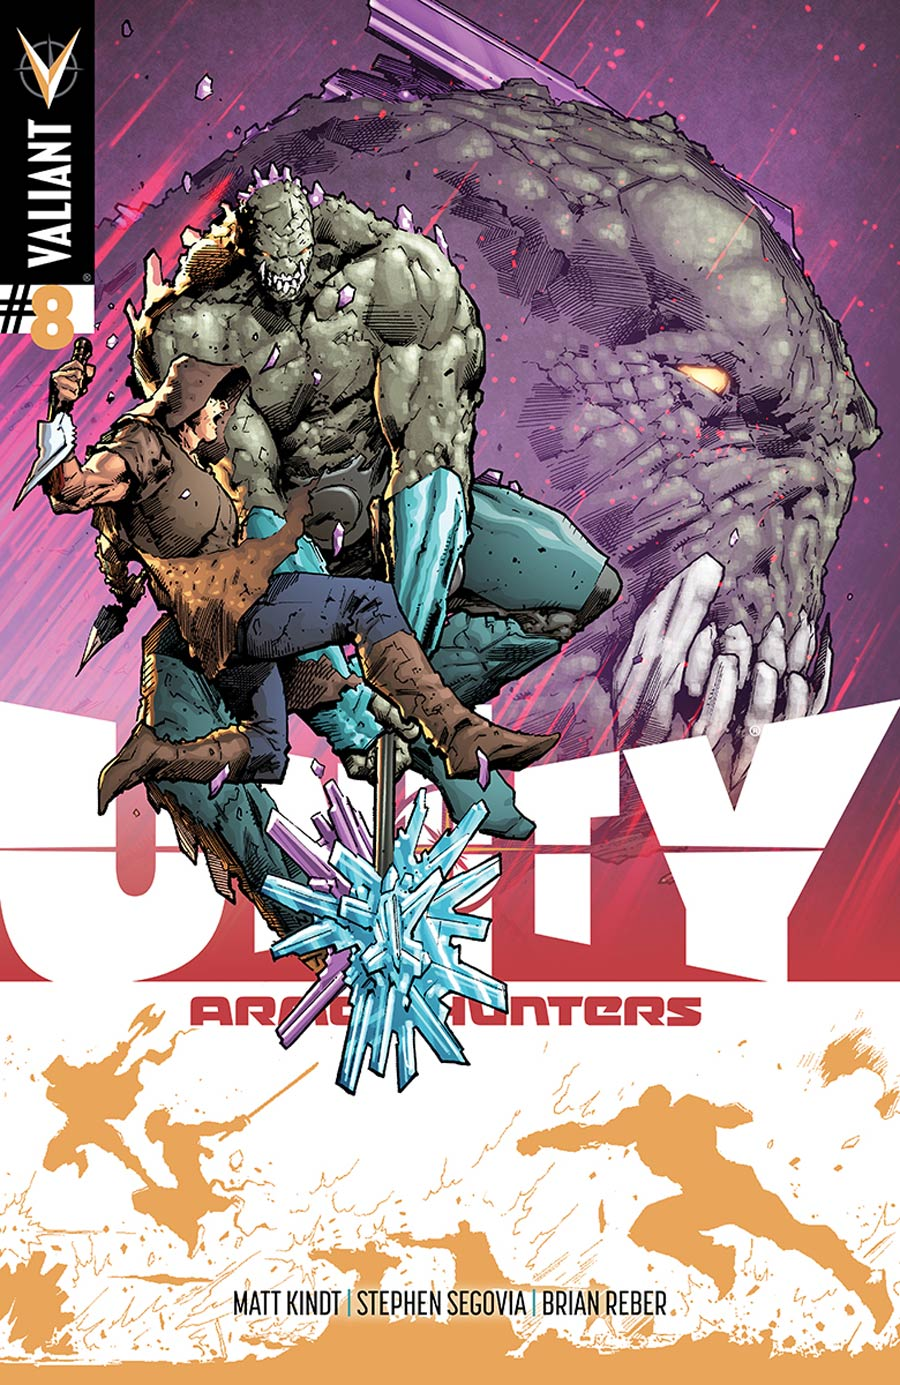 Unity Vol 2 #8 Cover E Incentive Trevor Hairsine Armor Hunters Variant Cover (Armor Hunters Tie-In)